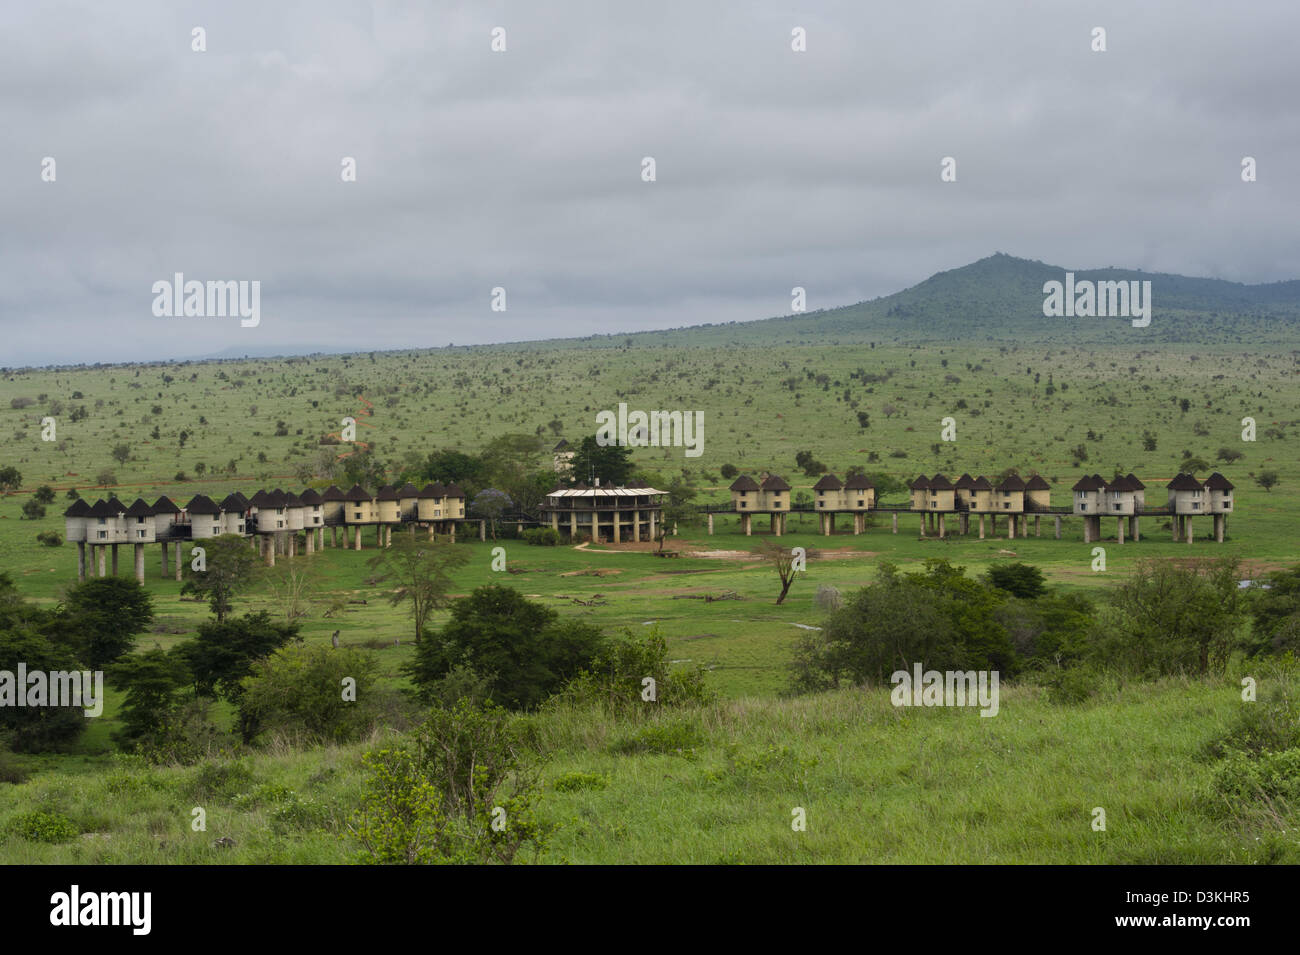 Sarova Salt Lick Lodge, Taita Hills Wildlife Sanctuary, Kenya Immagini Stock